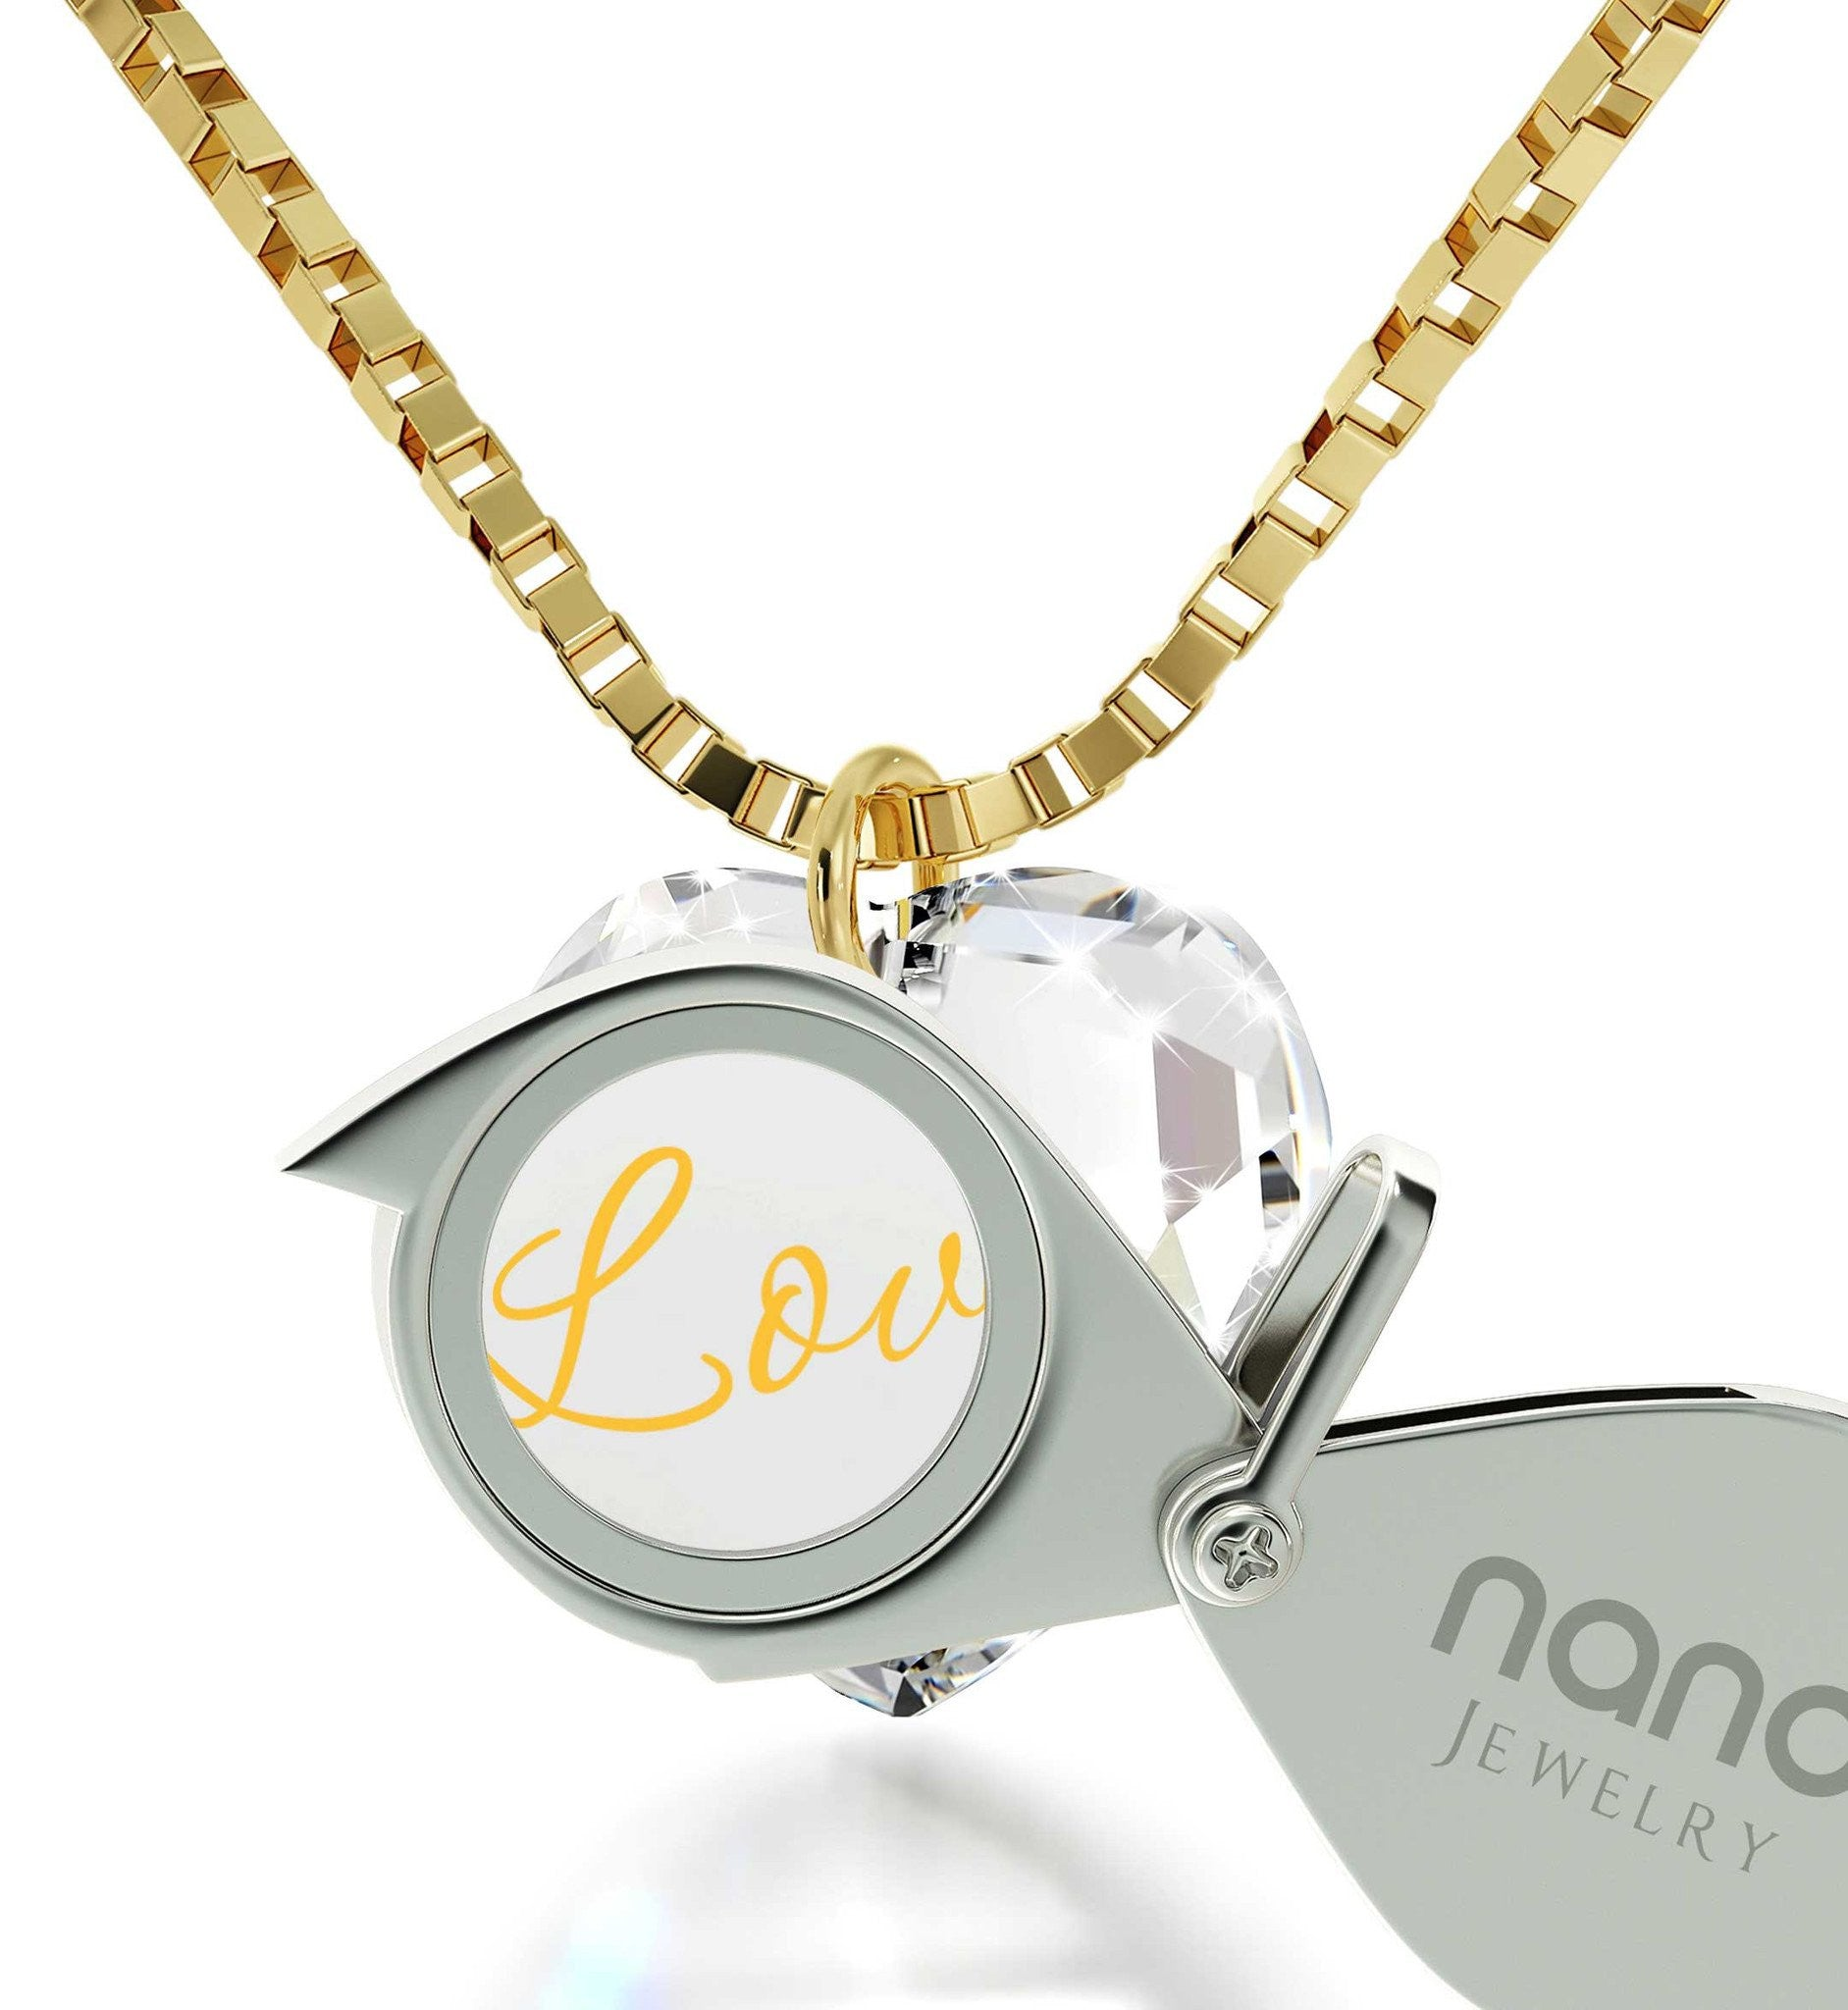 """I Love You"" in 24k Gold, Cute Necklaces for Her, Good Gifts for Girlfriend, Gold Plated Jewelry"